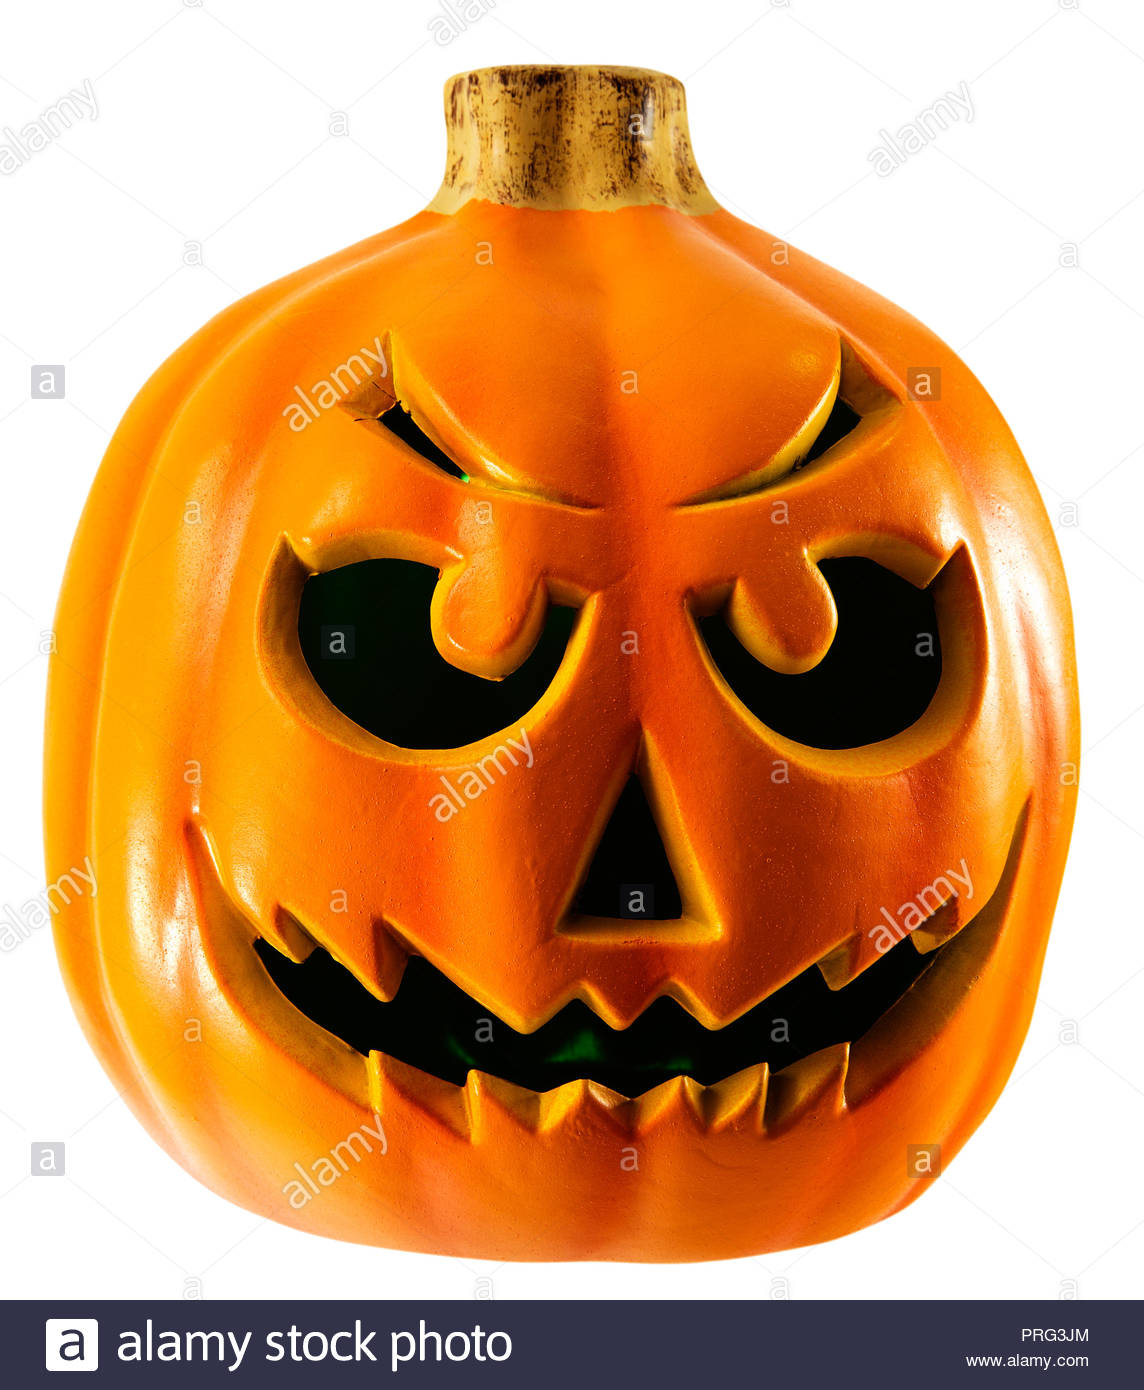 This pumpkin is lit from the interior with a soft green glowing light. Fun menacing grimace for Halloween themes. - Stock Image